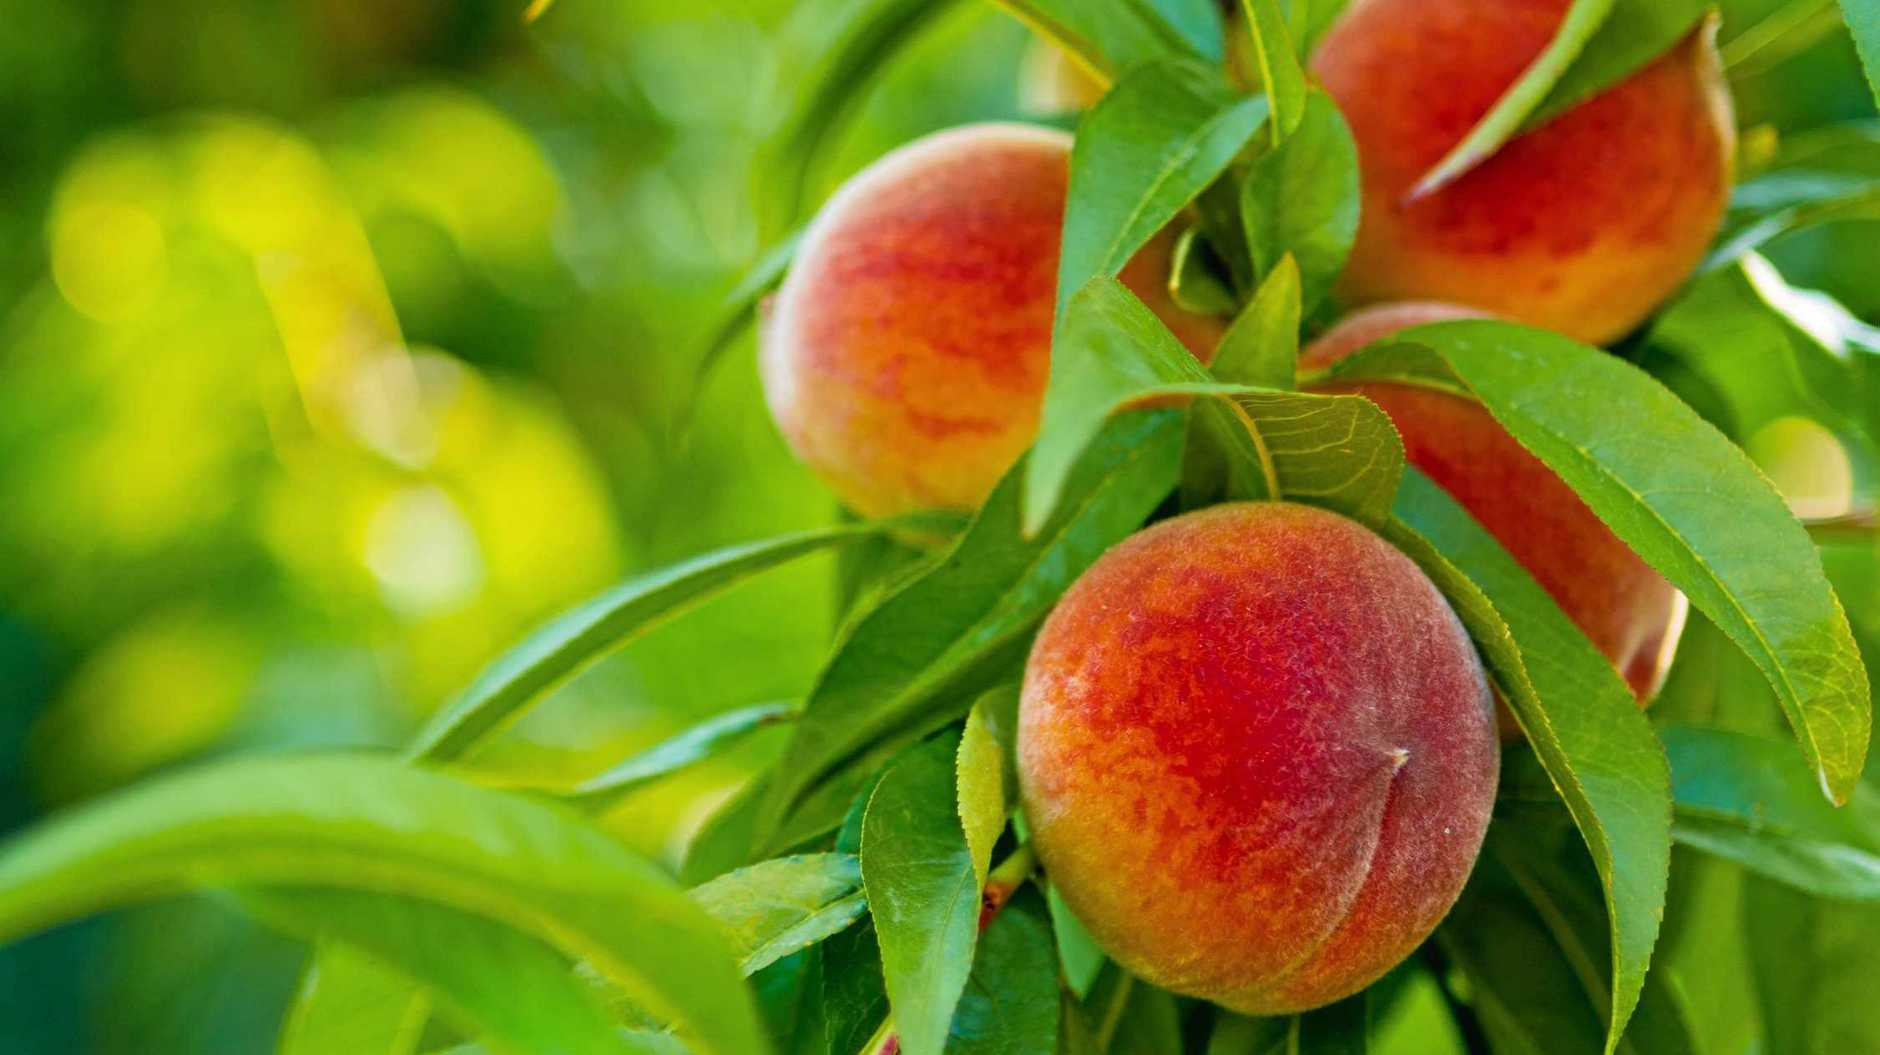 If you want to grow peaches or nectarines in coastal areas north of about Port Macquarie, you need to plant 'low chill' varieties.